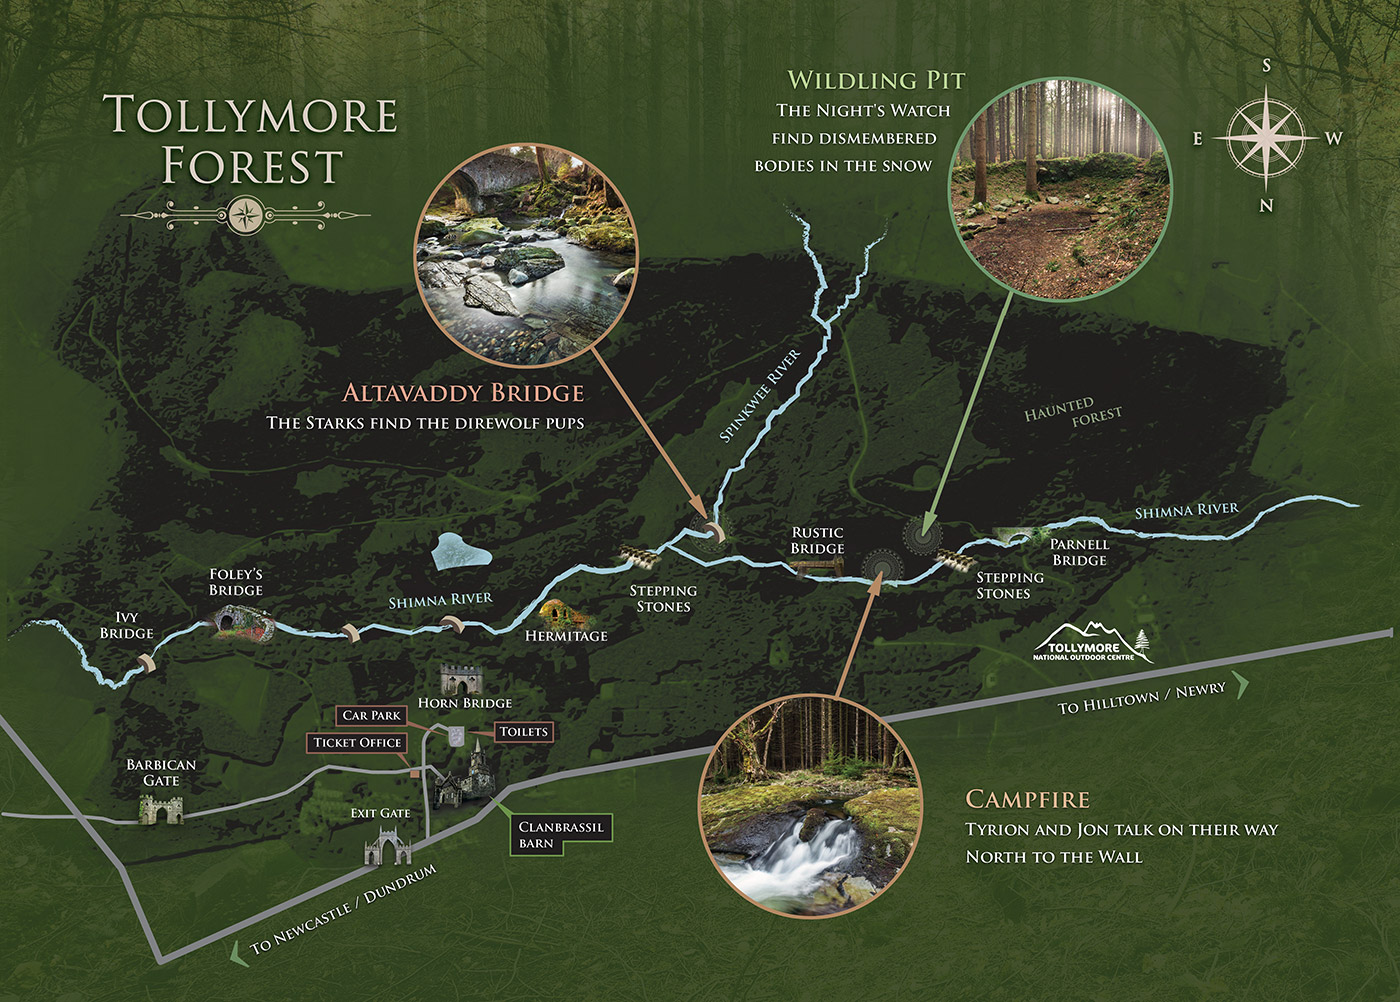 game of thrones tollymore map.jpg